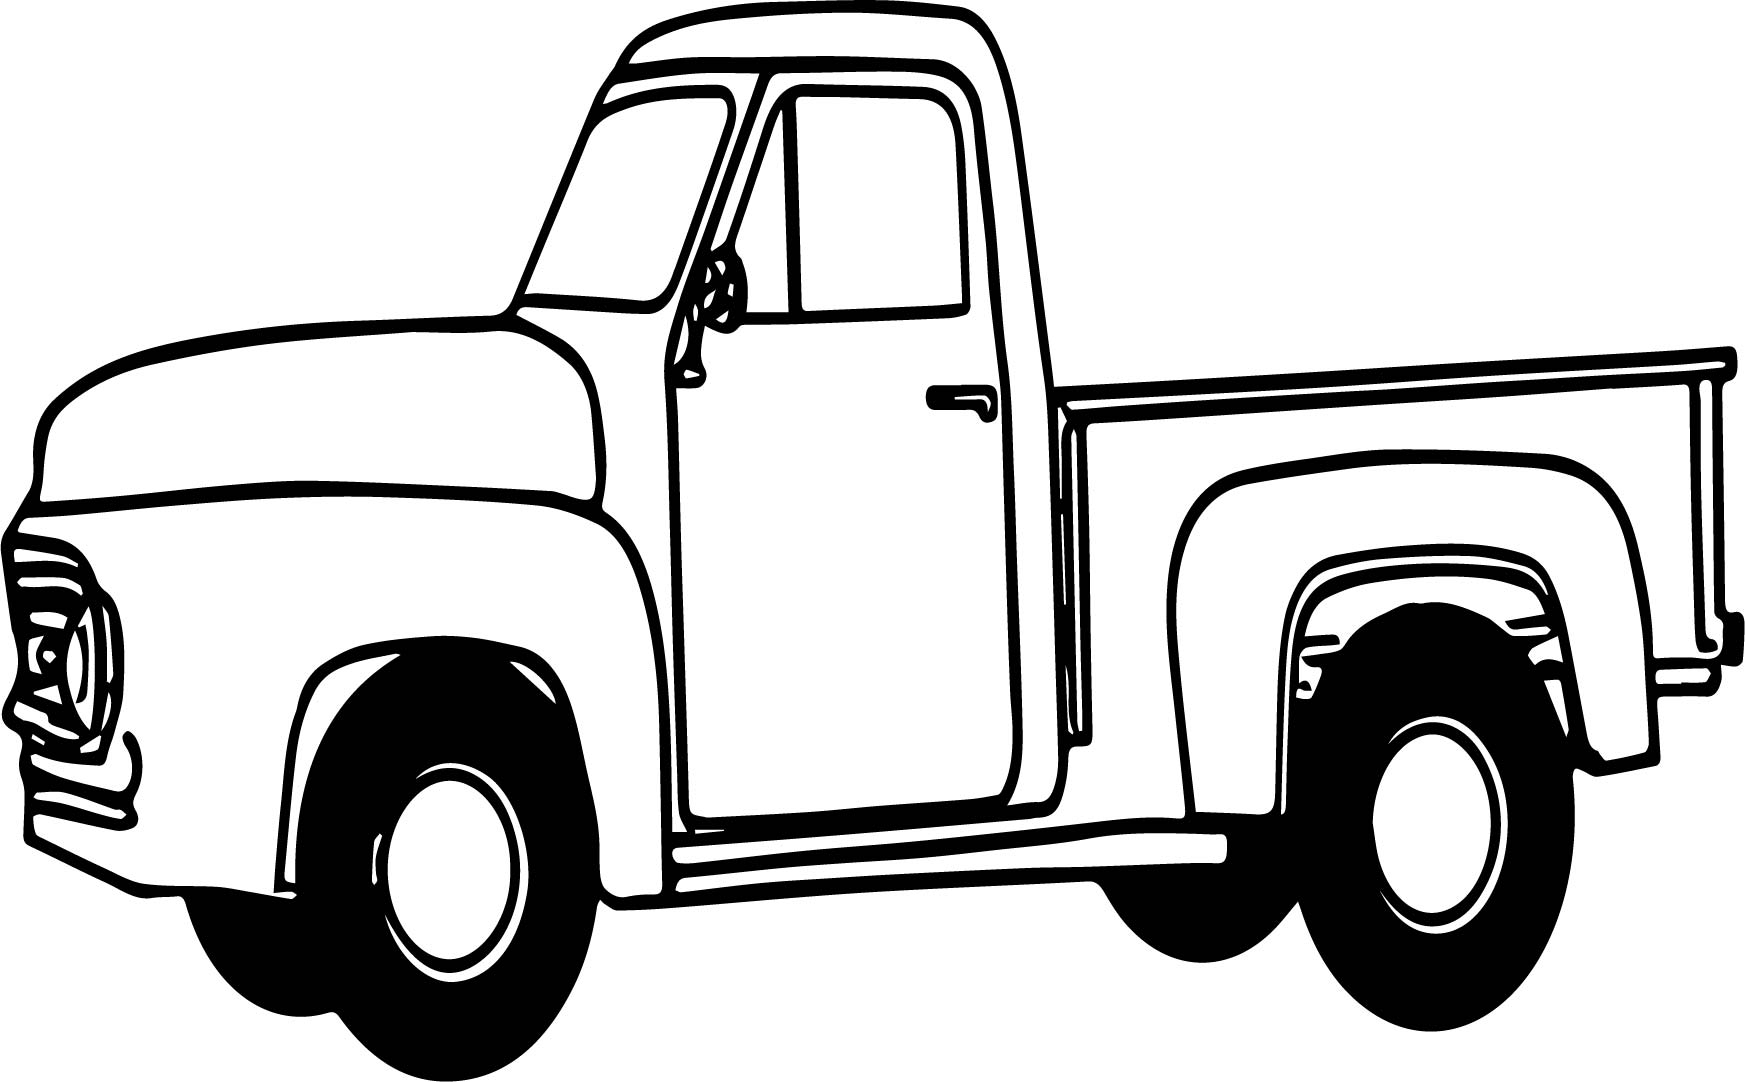 dallas cowboys coloring pages - img ba ford f150 truck coloring pages